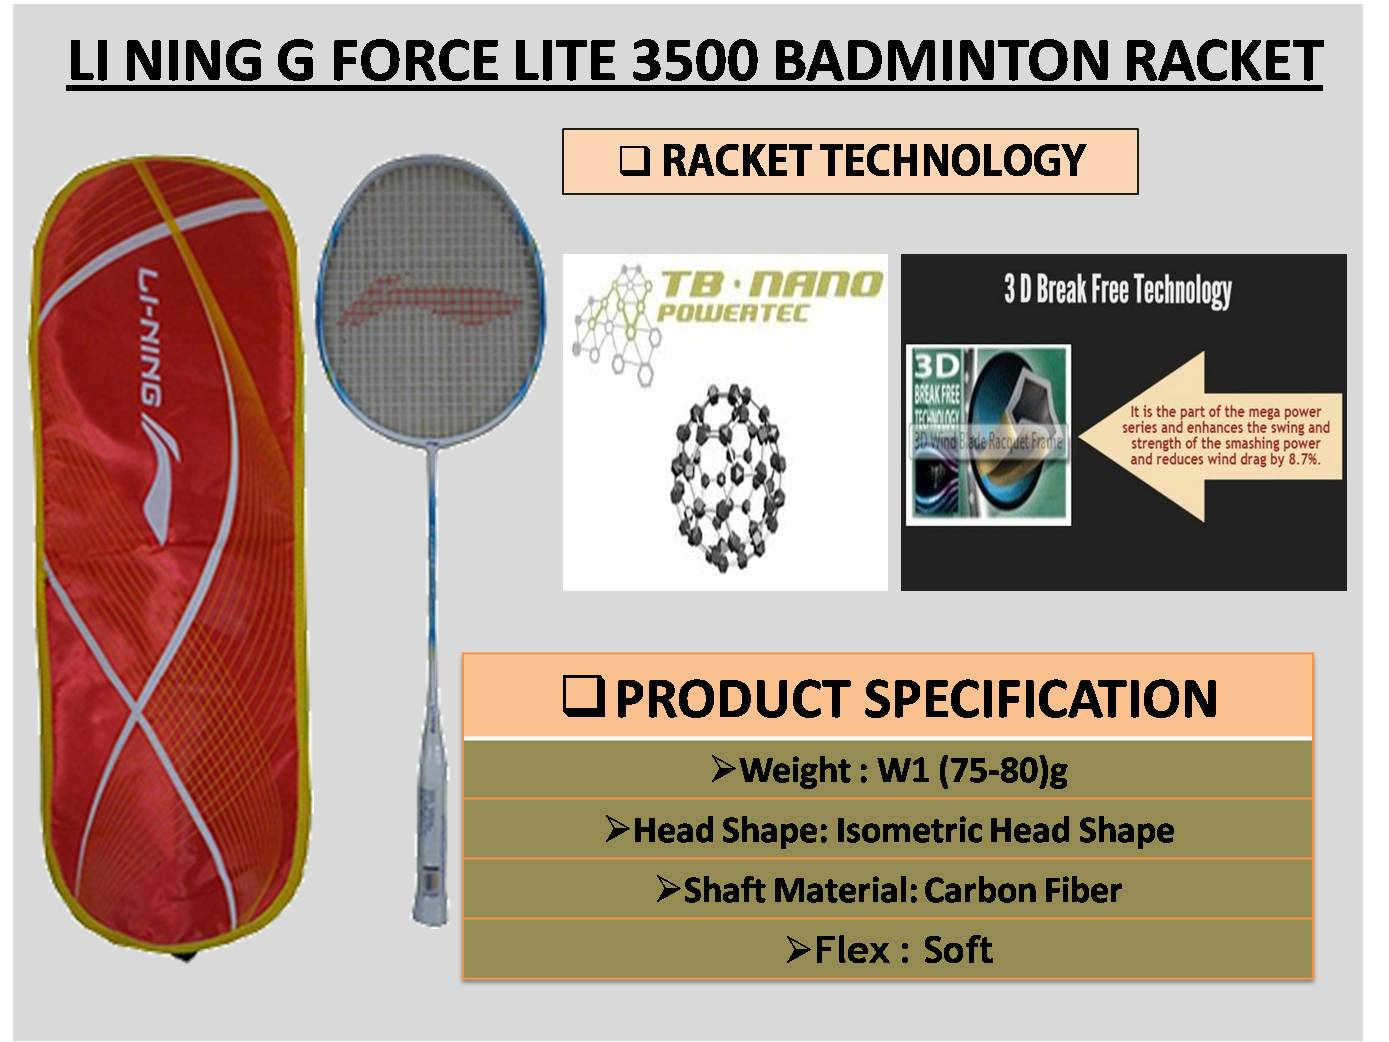 LI NING G FORCE LITE 3500 BADMINTON RACKET_6